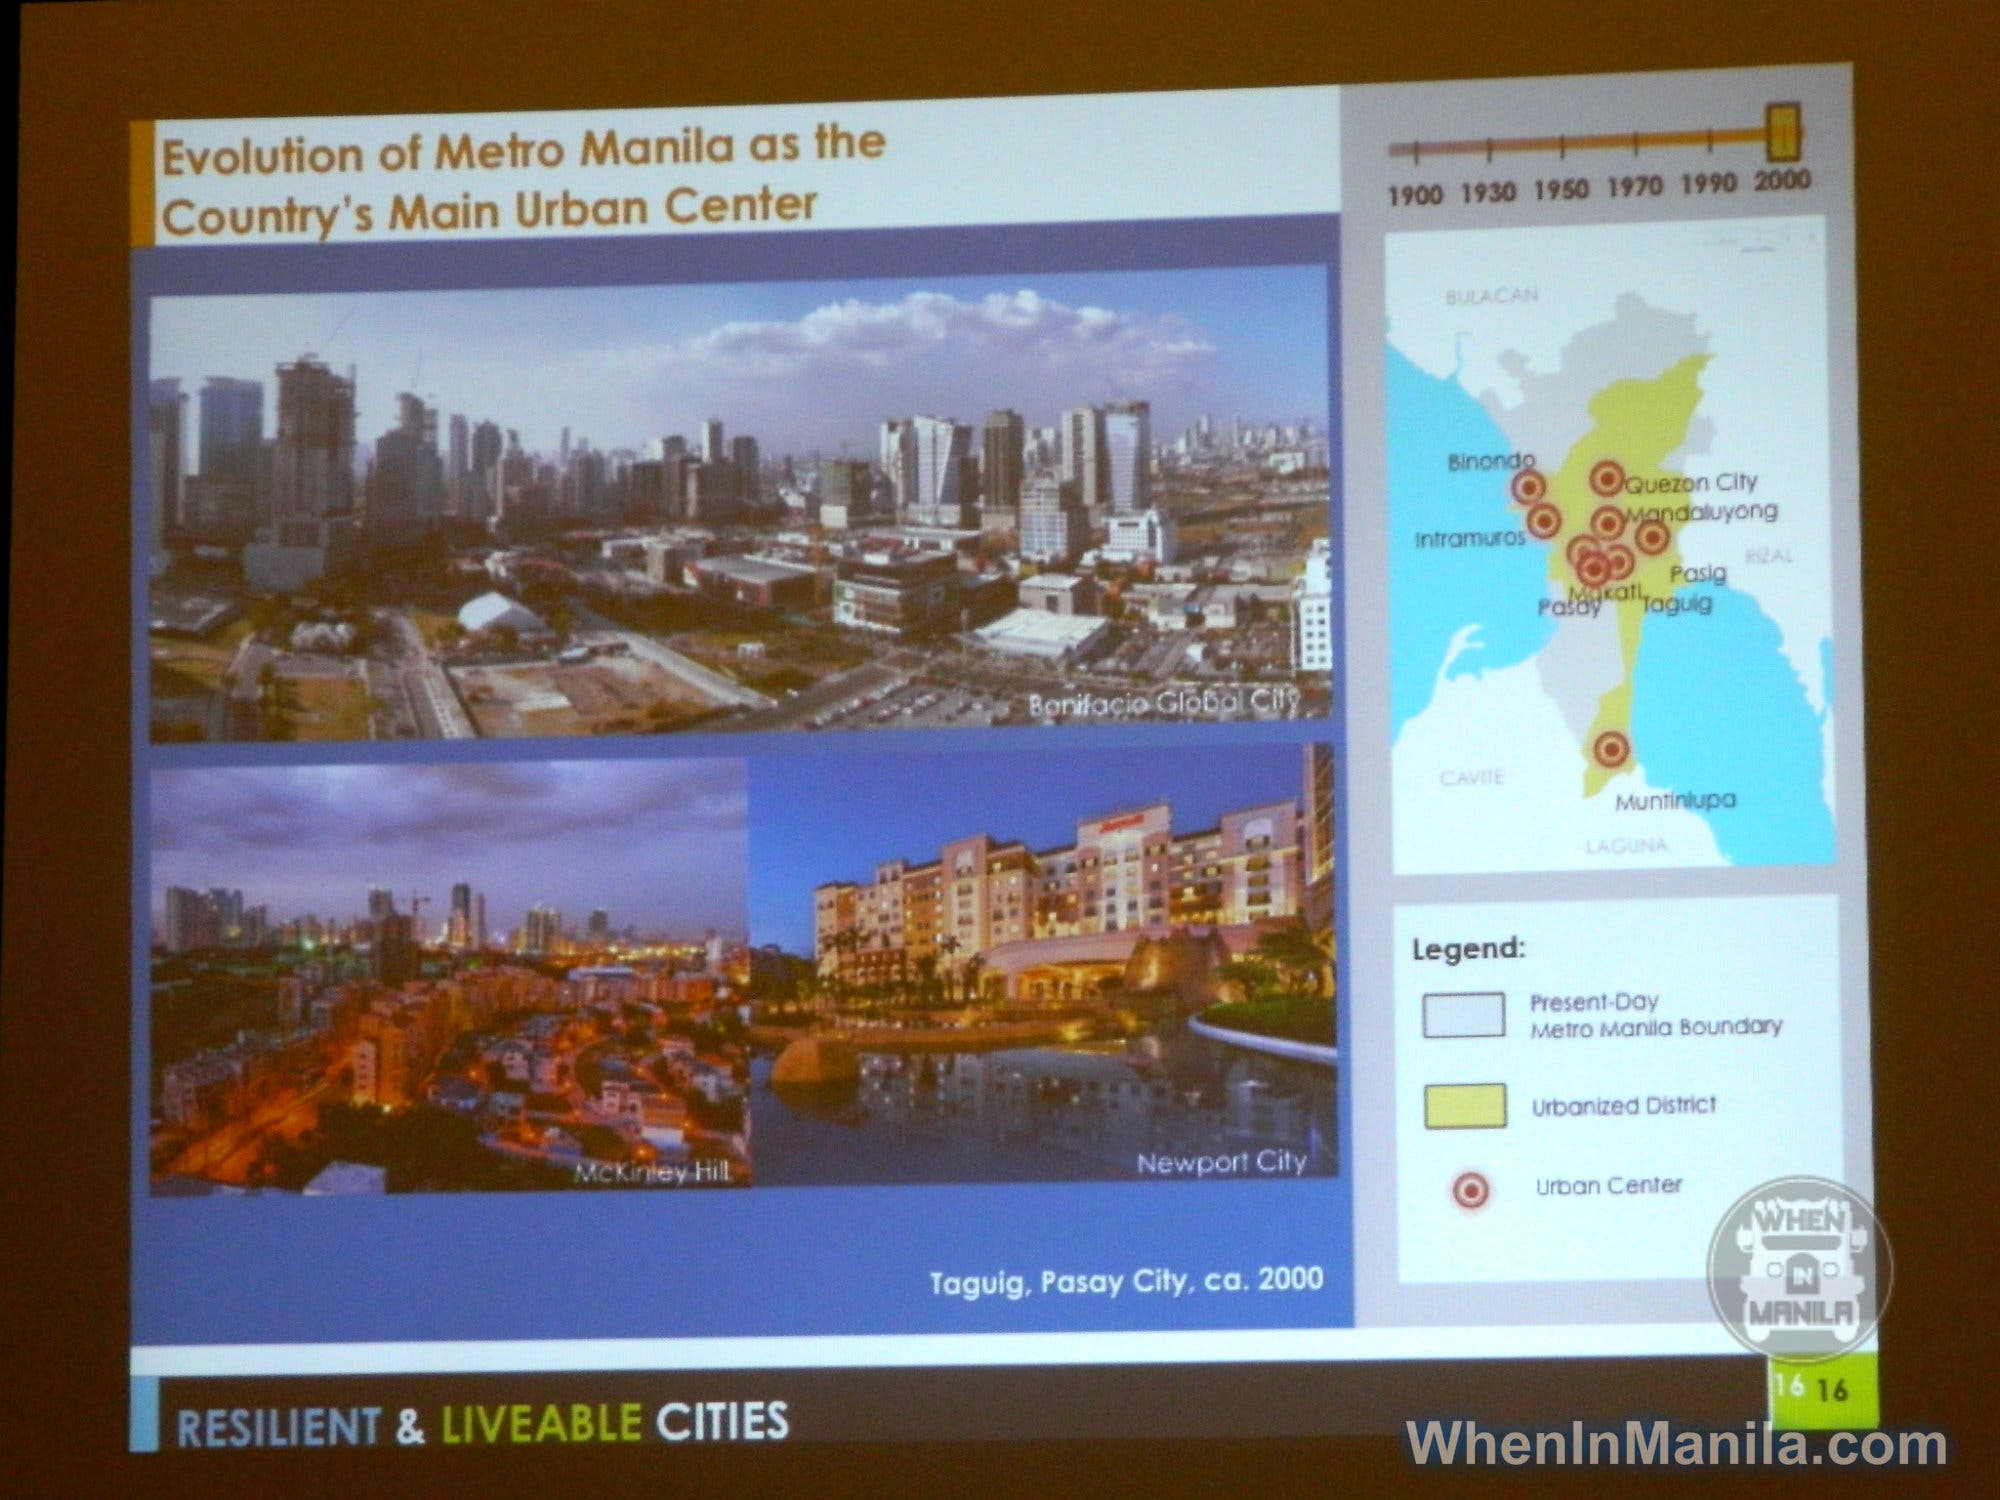 #iPlan: Resilient & Livable Cities by Asia Society Philippines